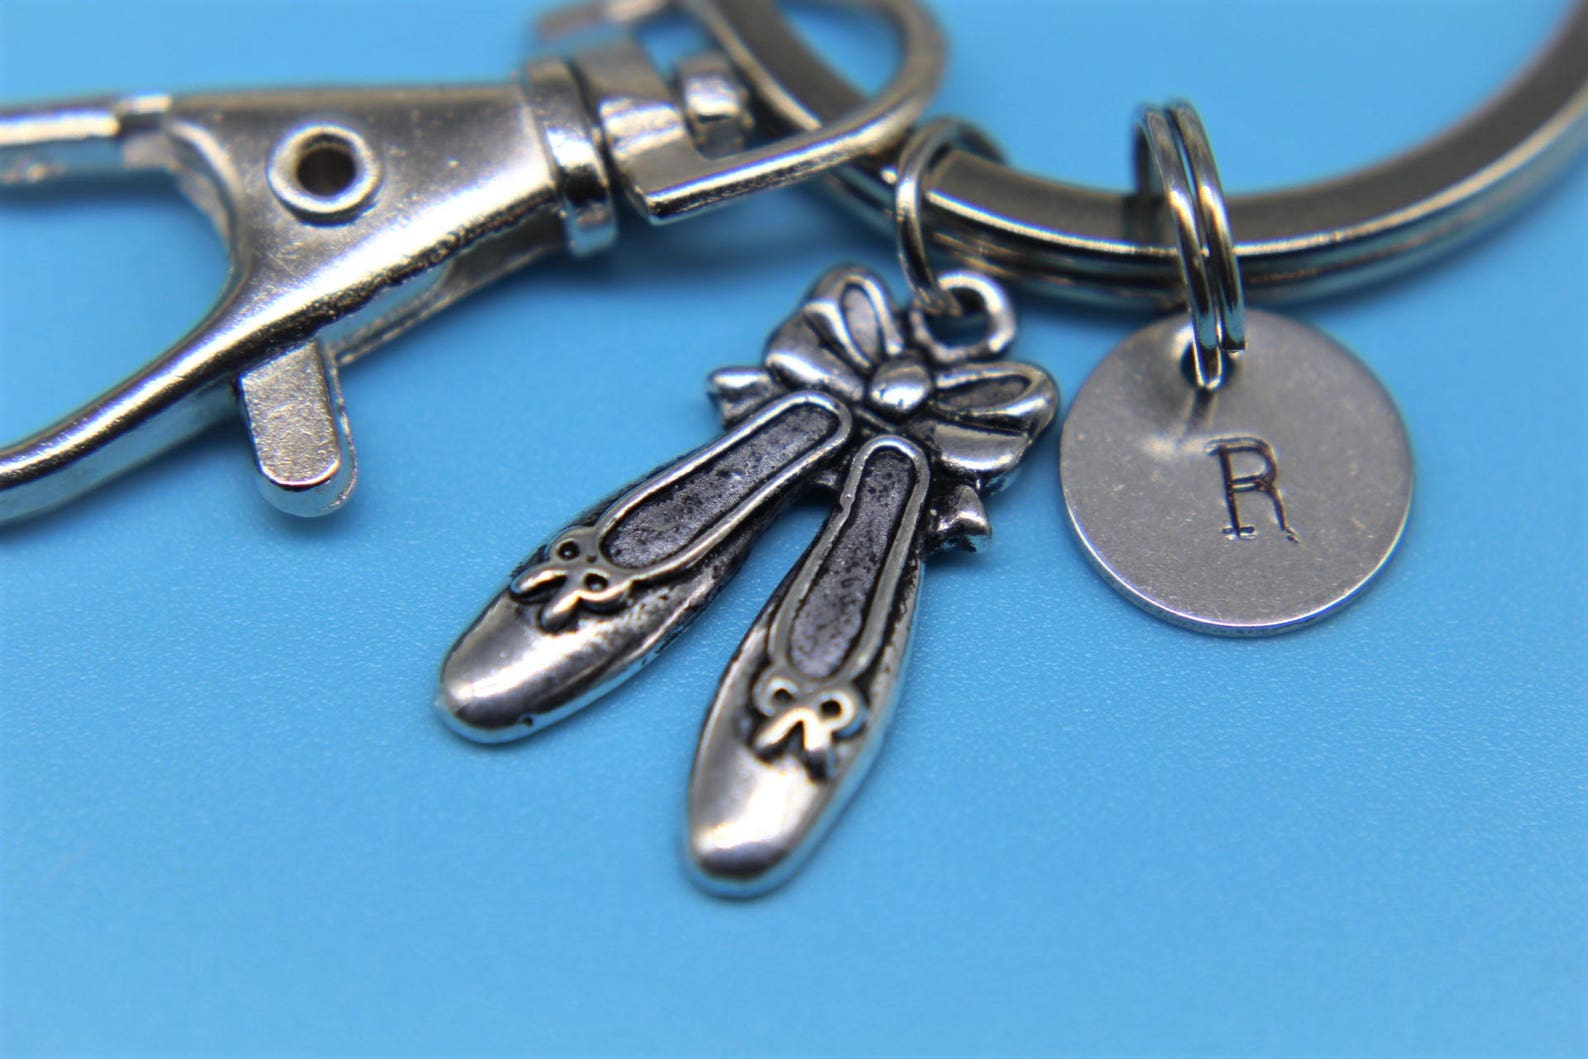 silver ballet shoes charm keychain ballet shoes charm keychain dance pendant personalized keychain initial keycharm monogram jew